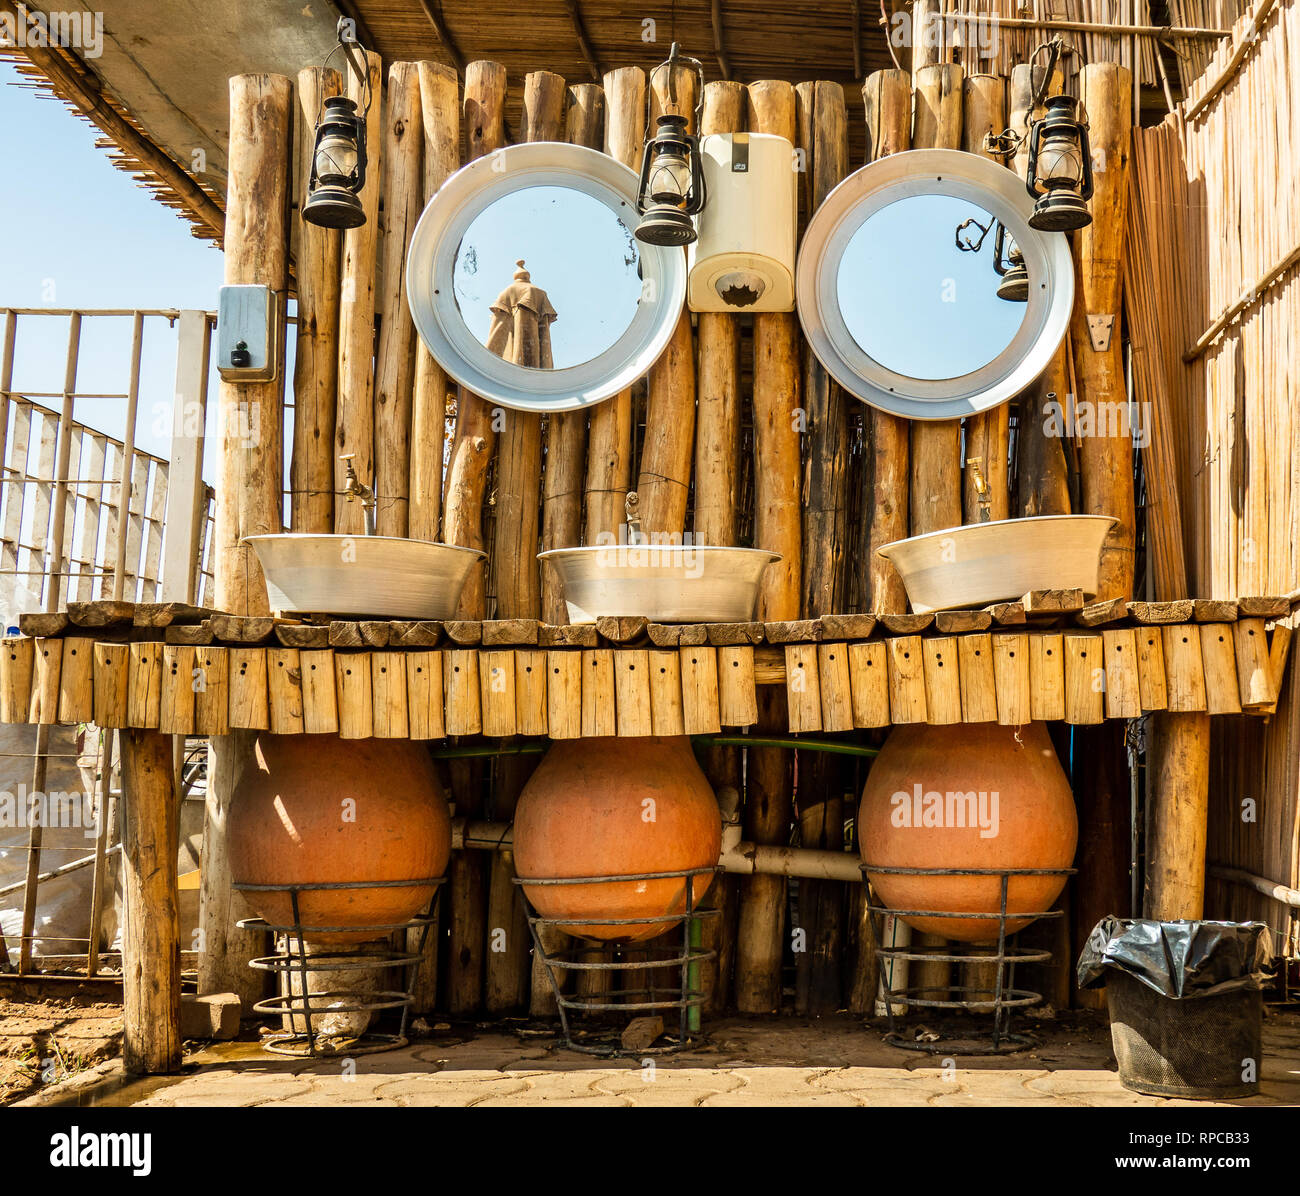 Khartoum, Sudan, February 5. 2019: Open washroom of a good restaurant on the Nile with water amphorae, metal bowls, faucets and petroleum lamps behind - Stock Image